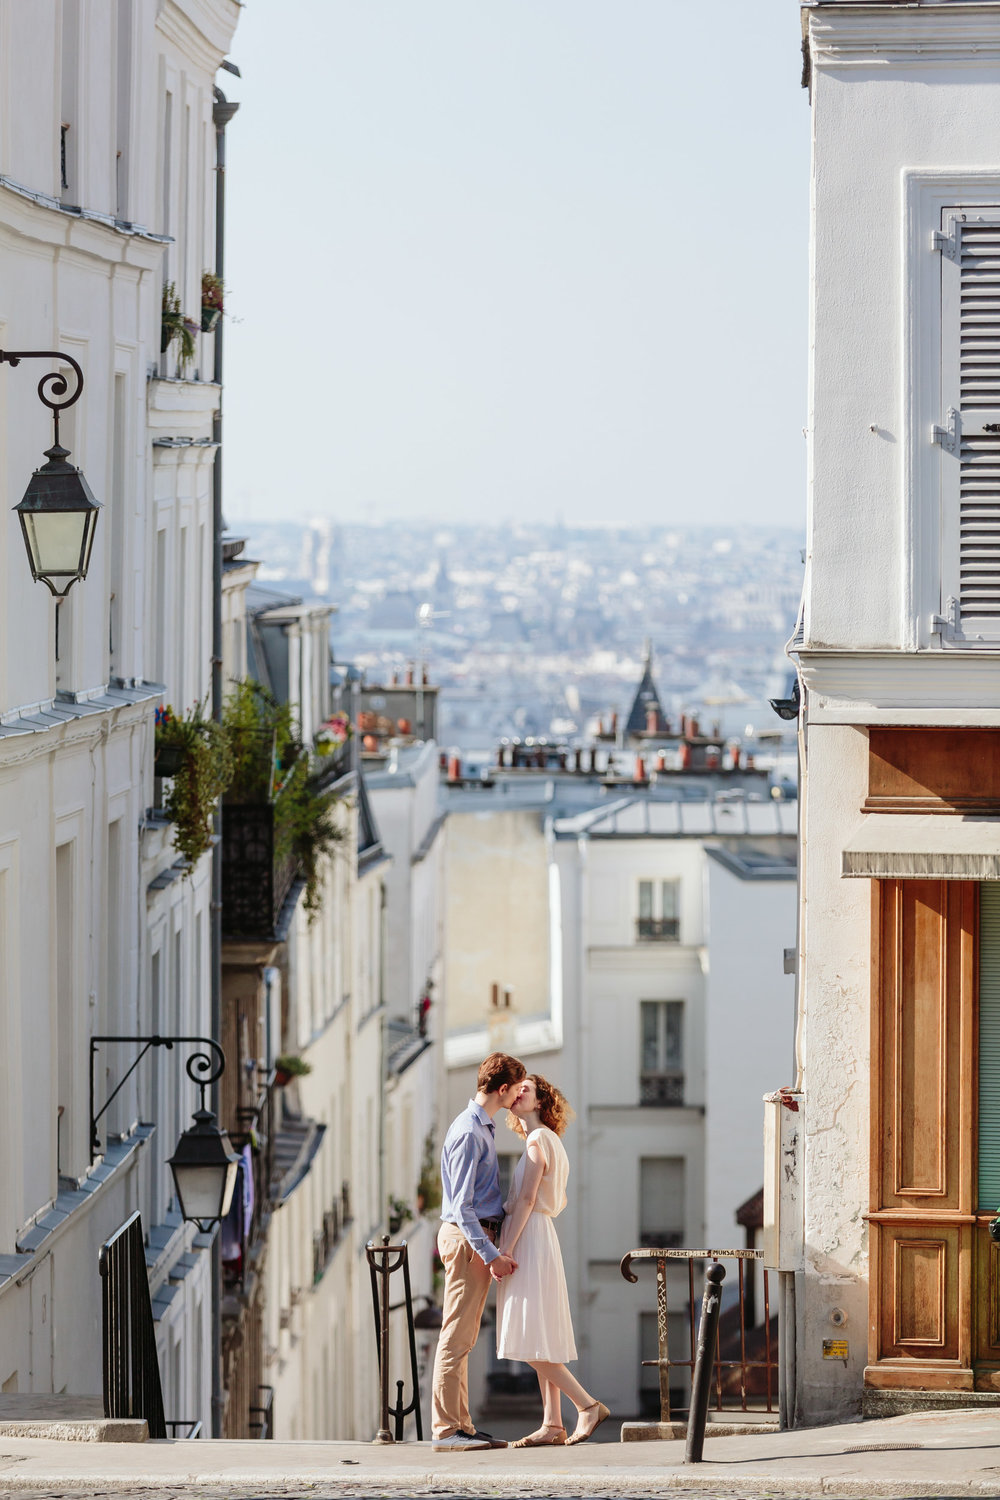 Couple in love kissing at a street in Montmartre at sunrise captured by Paris Photographer Federico Guendel IheartParisFr